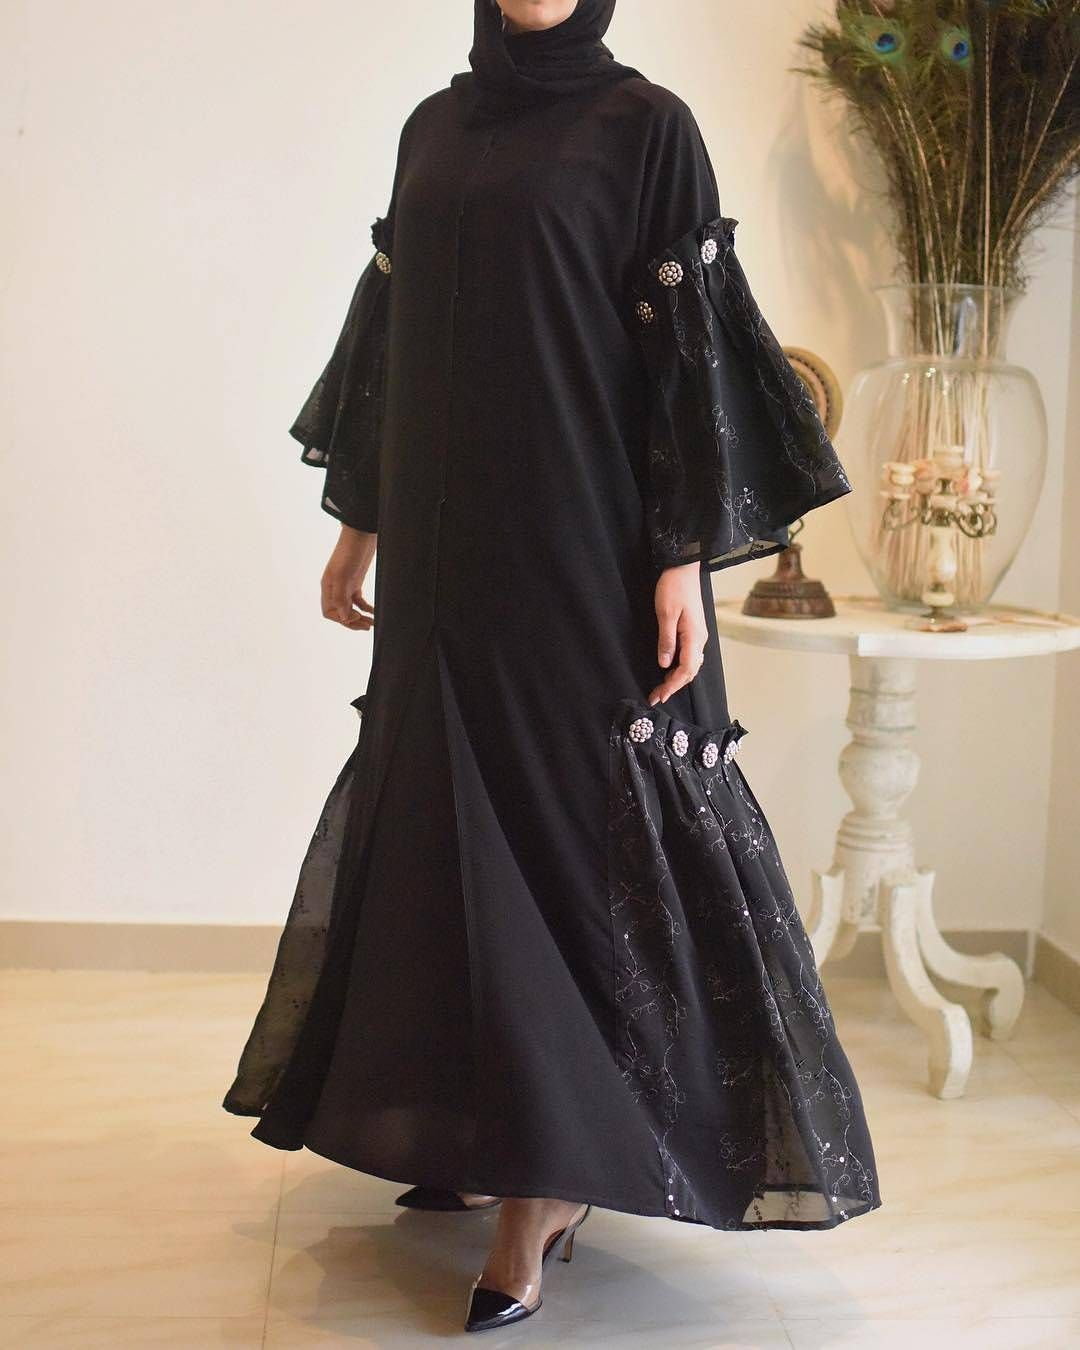 2702d3816 Shared By SUBHAN ABAYAS. Like Share Tag & Repost. To share your ABAYA